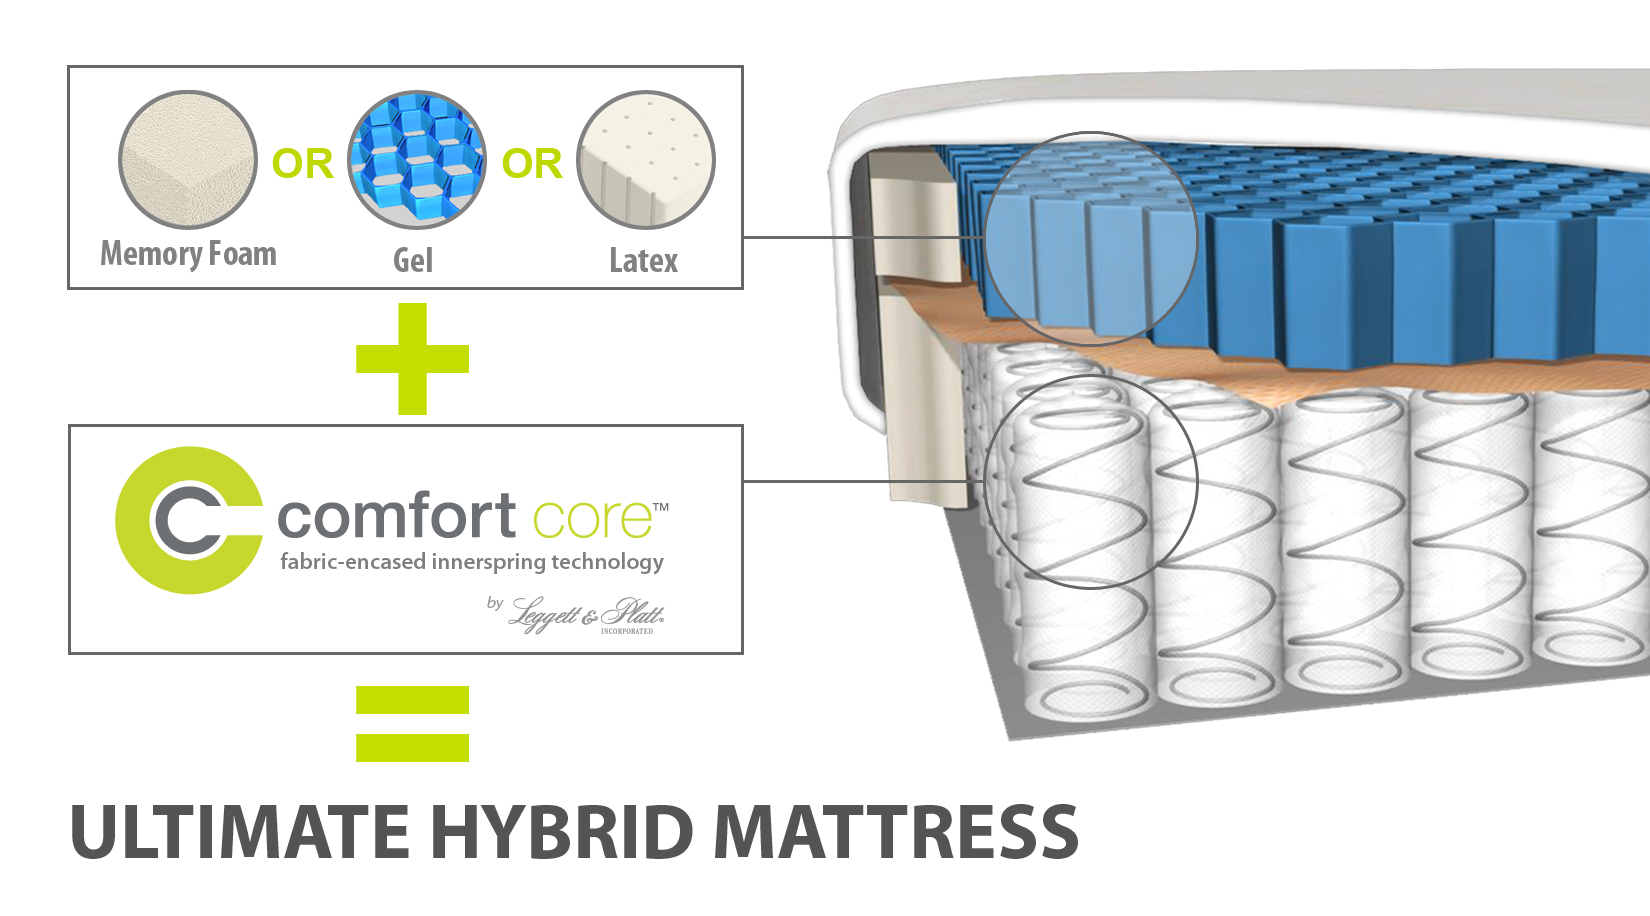 Restonic Mattress Models Ultimate Hybrid Mattresses